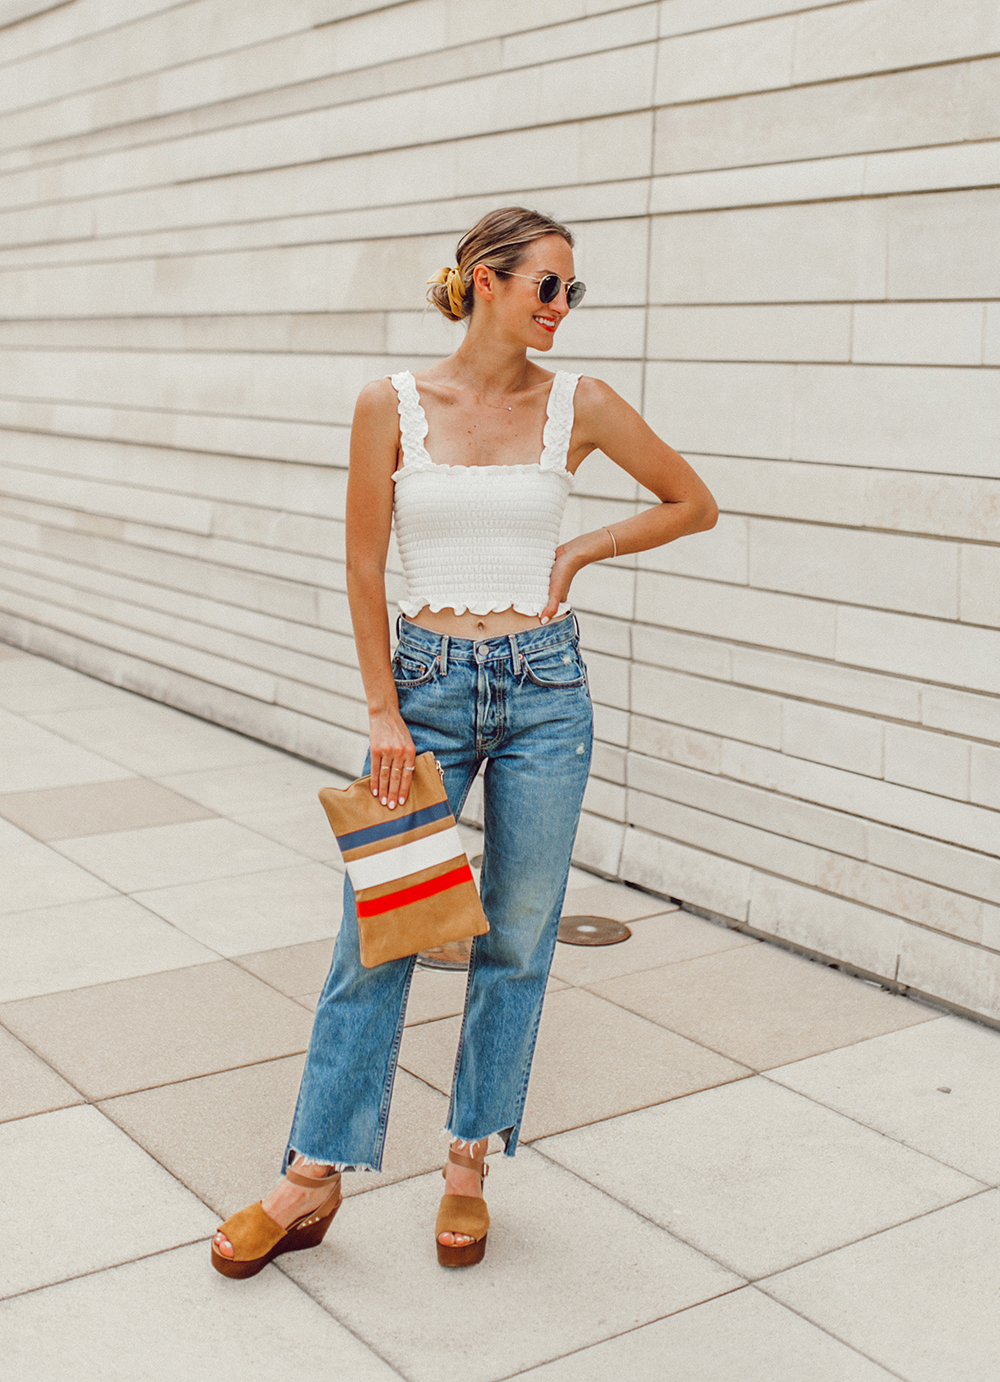 livvyland-blog-olivia-watson-austin-texas-fashion-style-blogger-reformation-tank-top-girlfriend-high-rise-jeans-hair-scarf-summer-outfit-5